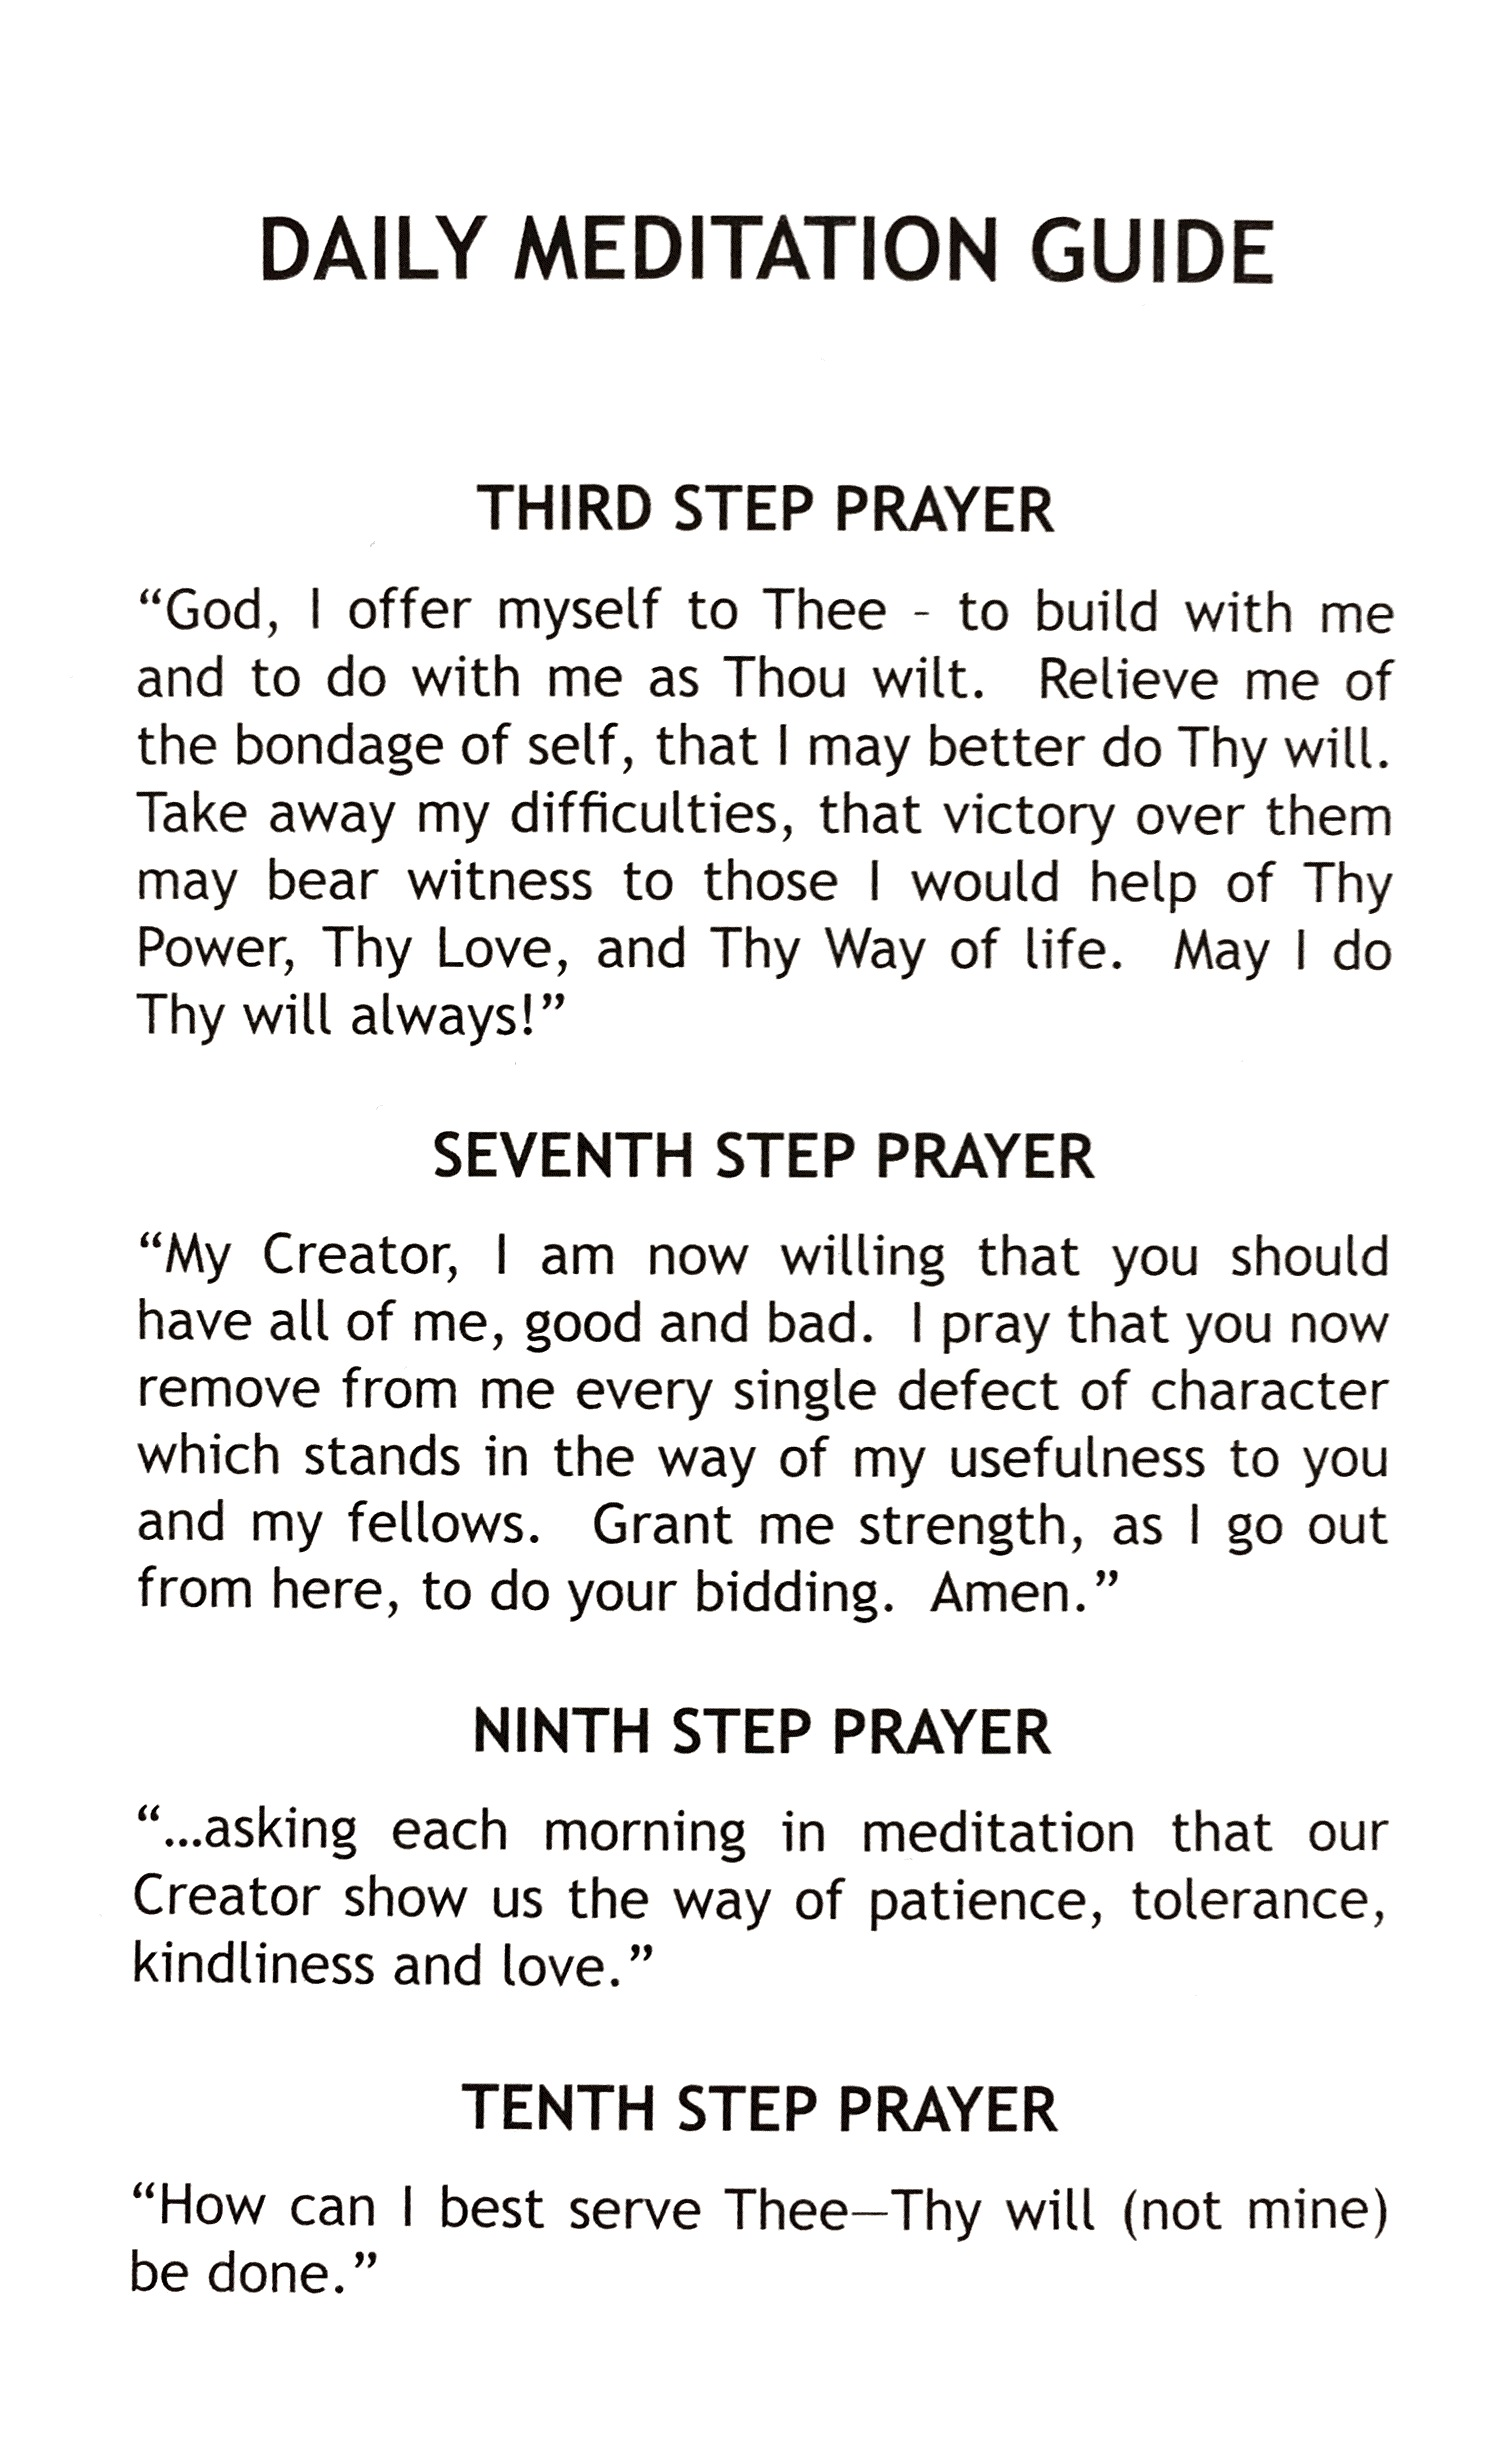 Daily Meditation Guide